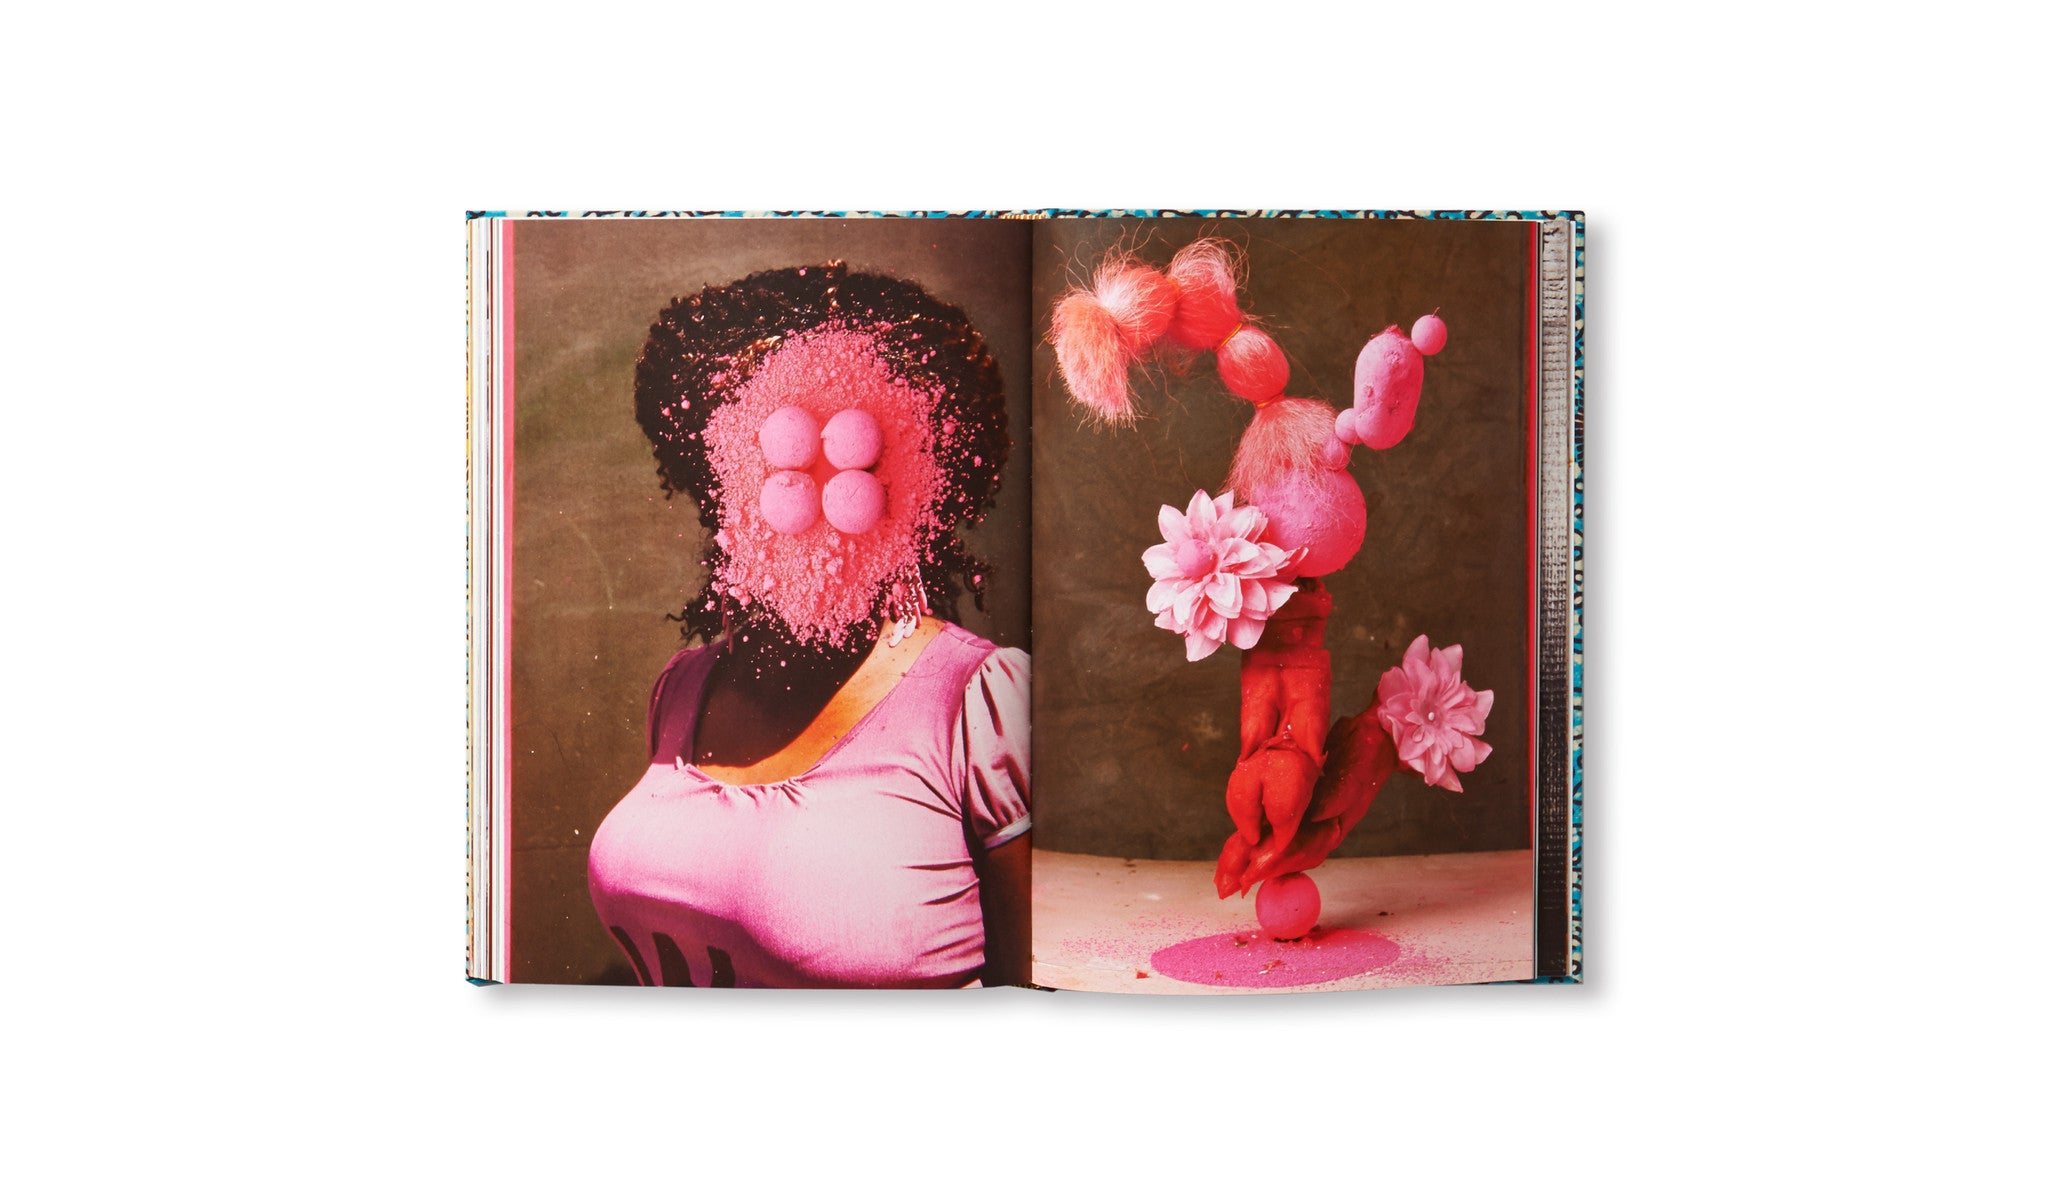 DALSTON ANATOMY by Lorenzo Vitturi [SECOND EDITION]